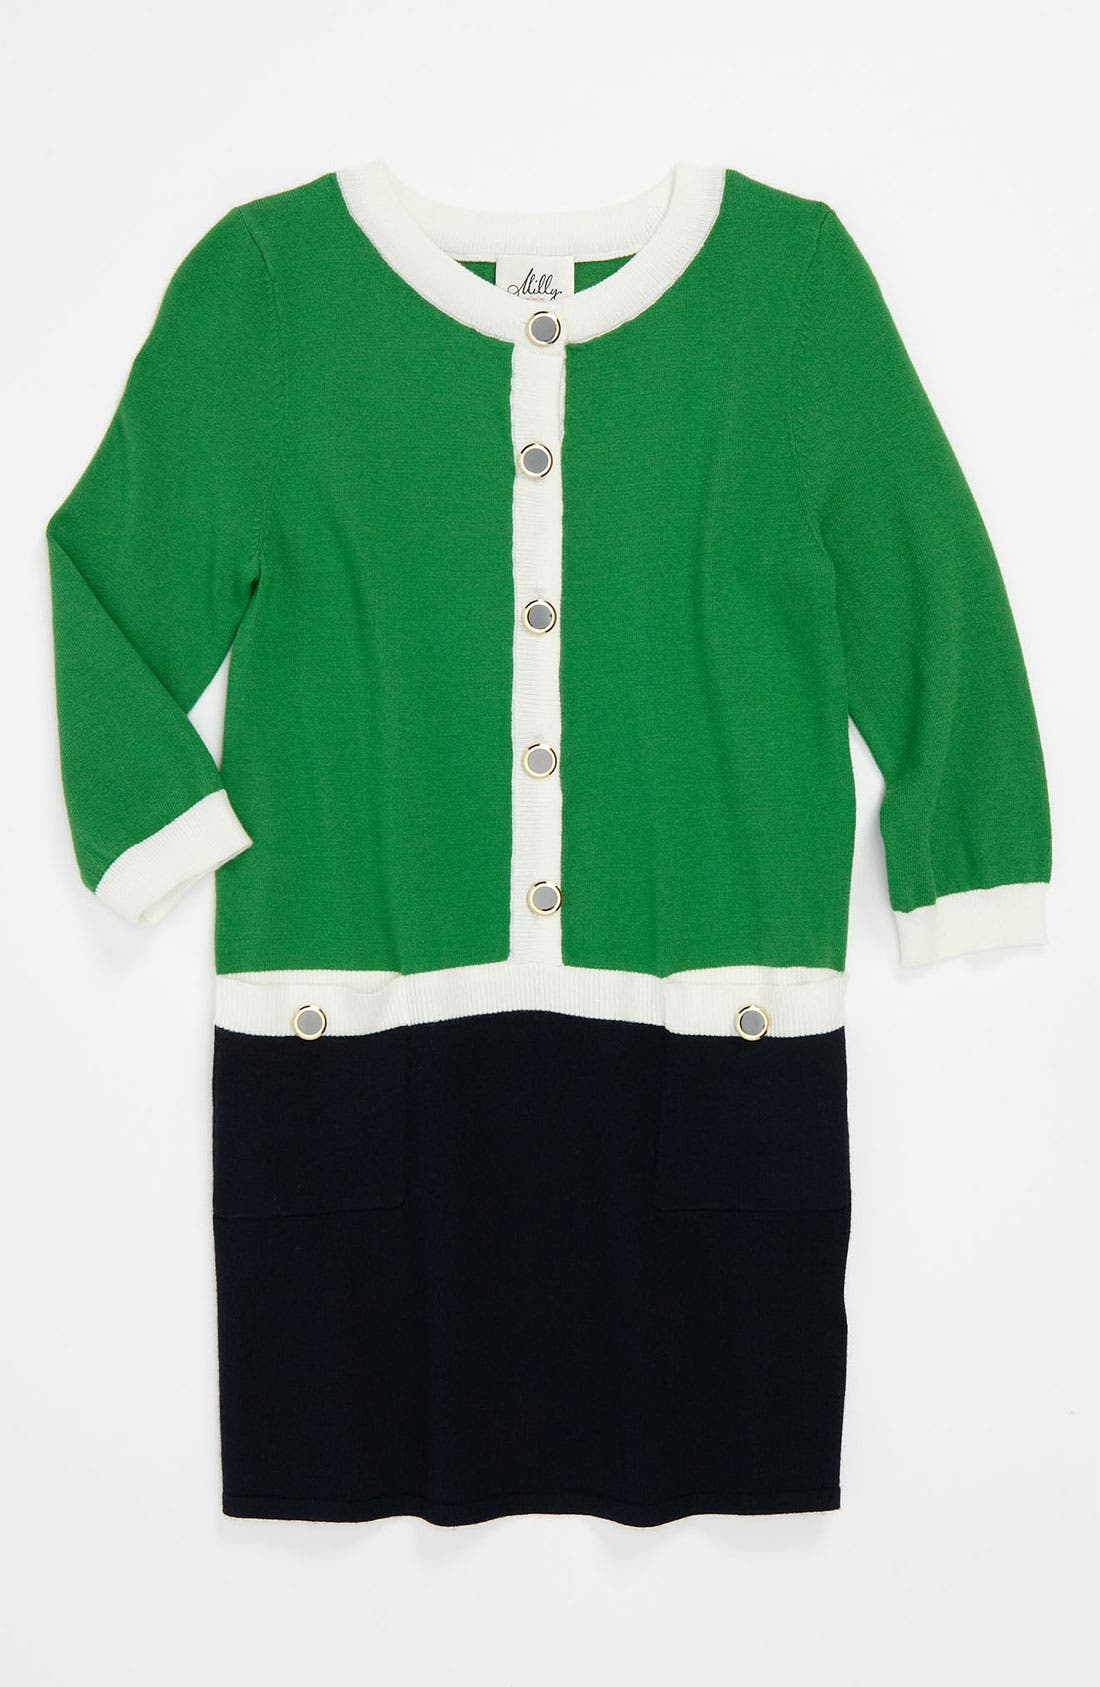 Alternate Image 1 Selected - Milly Minis 'Catie' Combo Knit Dress (Big Girls)